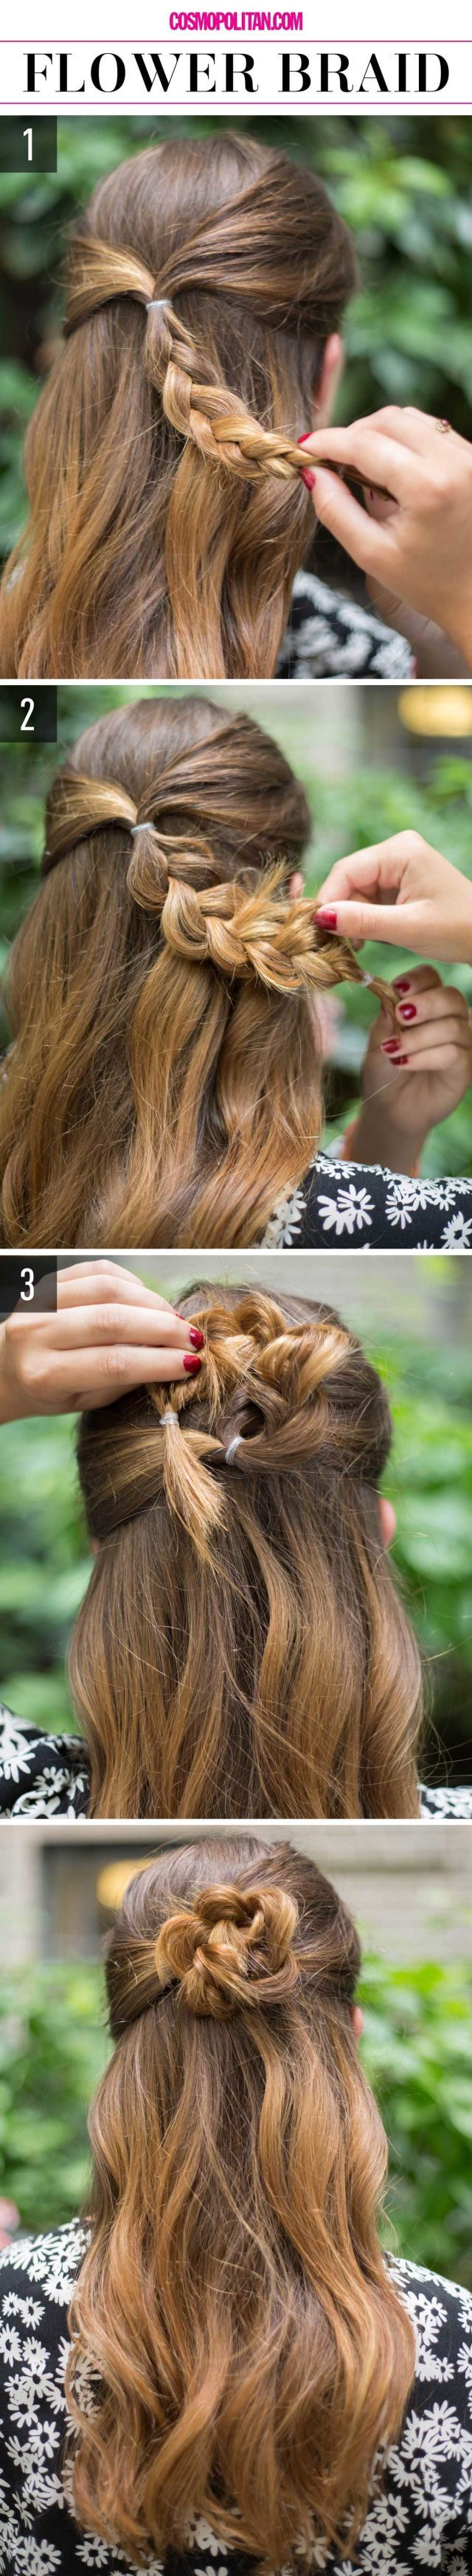 How to do a flower braided bun.